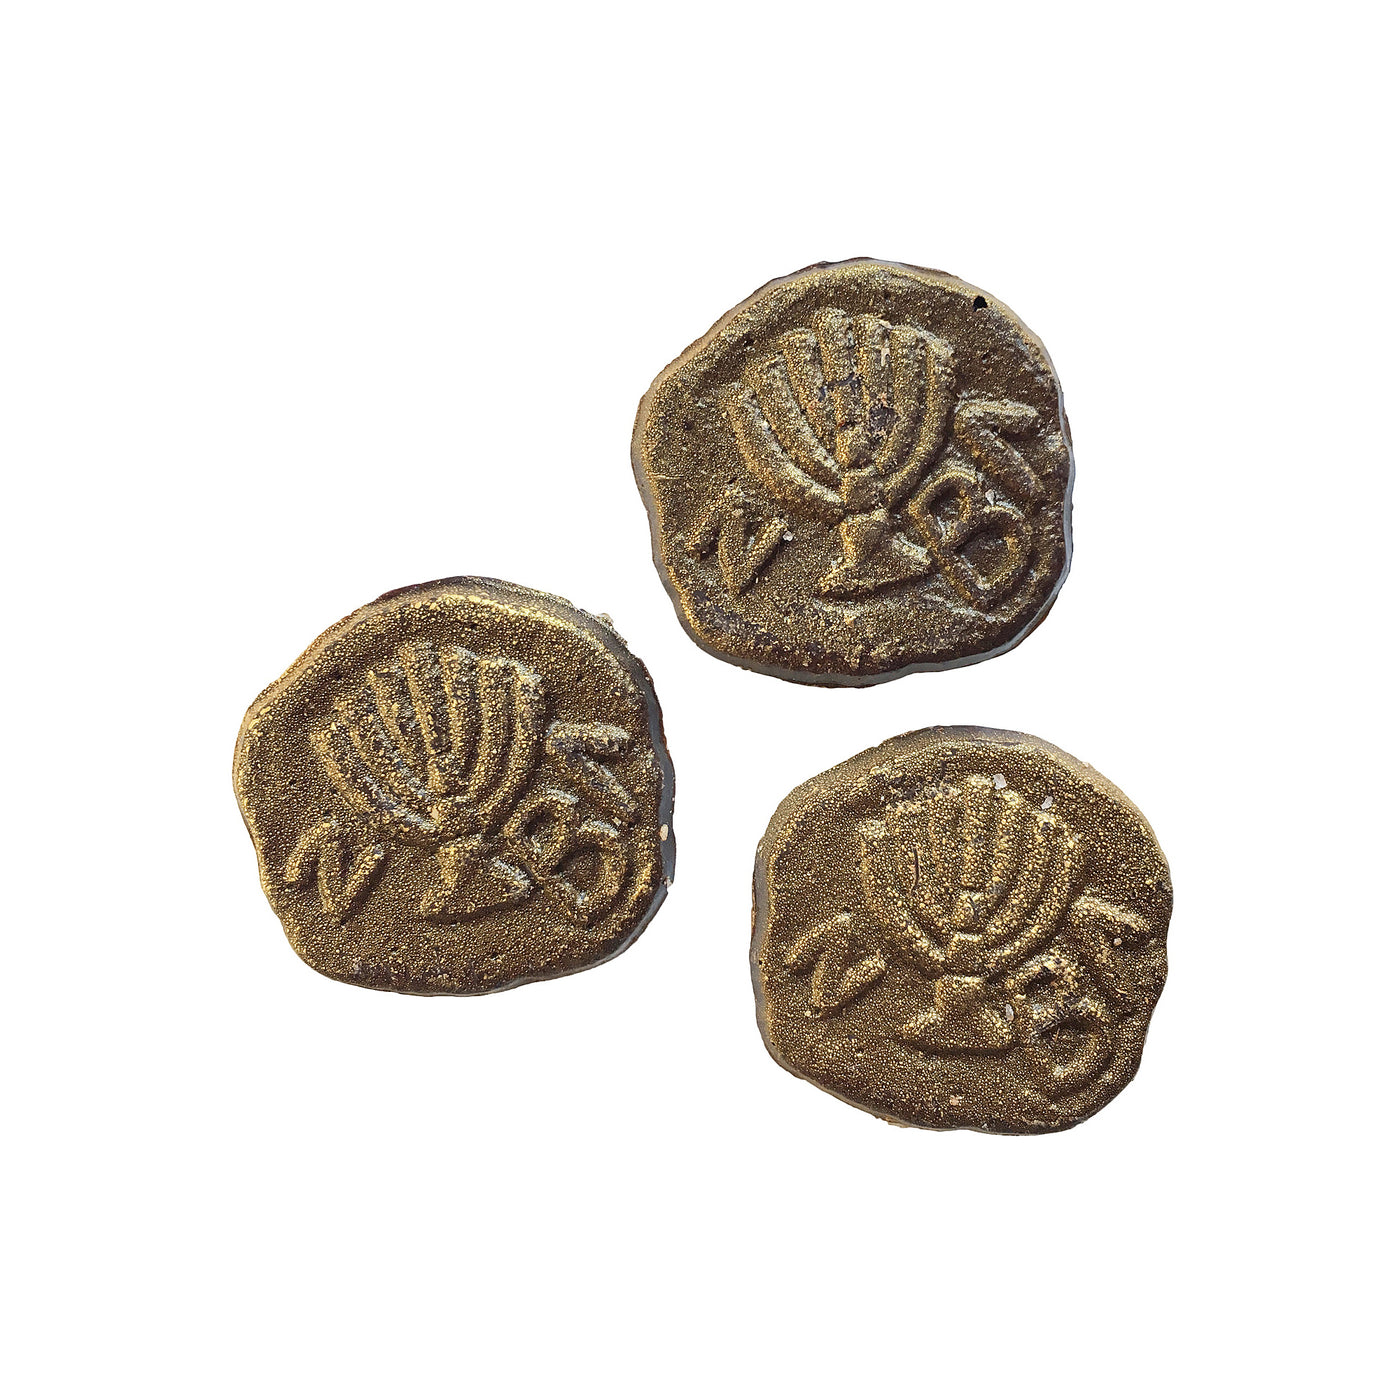 Hanukkah Gelt Coins Dark Chocolate Sea Salt - Nut Free - Non Dairy - Kosher